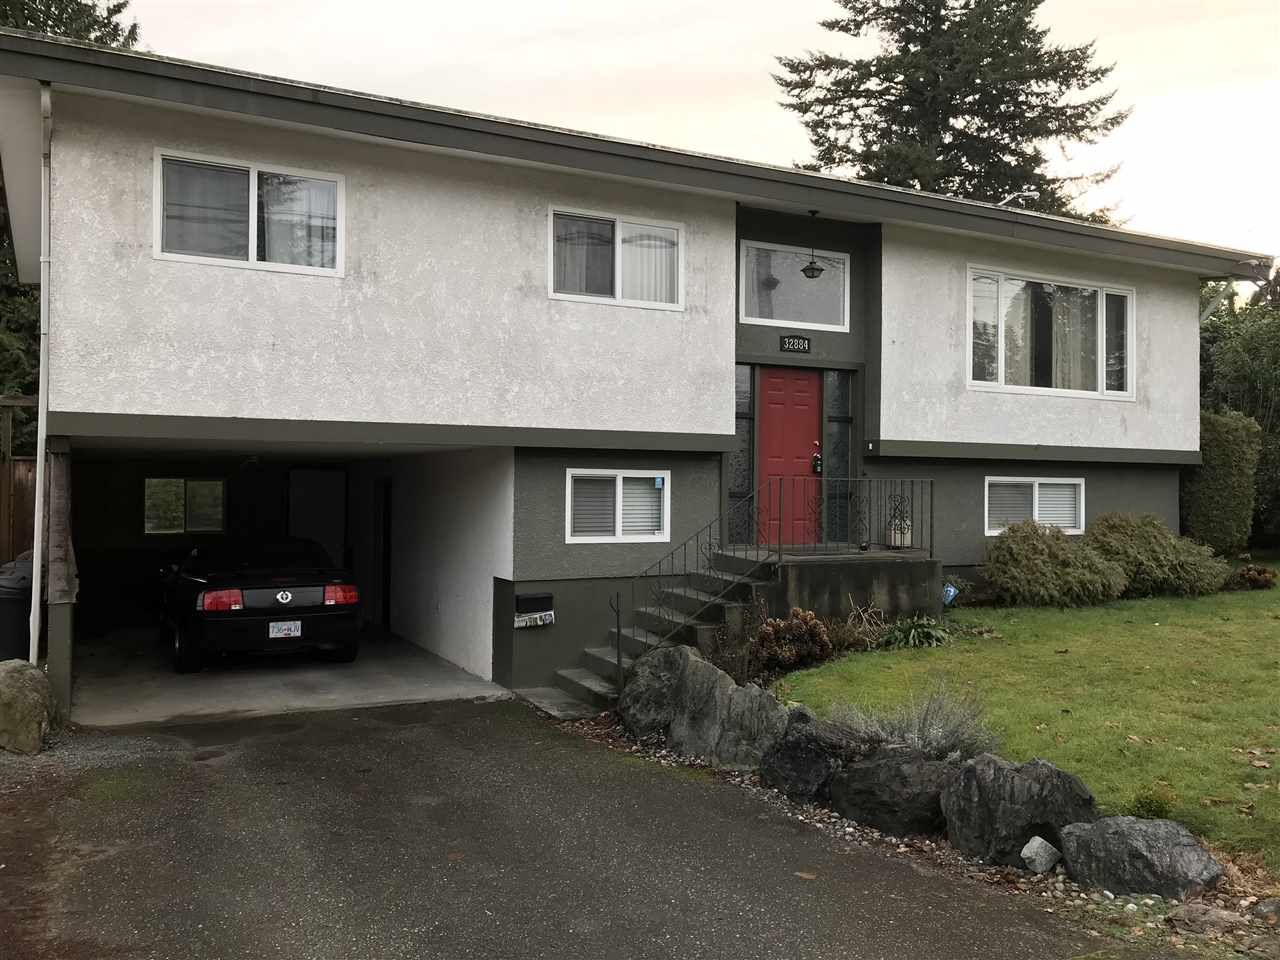 """Main Photo: 32884 BEVAN Avenue in Abbotsford: Central Abbotsford House for sale in """"~Mill Lake~"""" : MLS®# R2228988"""